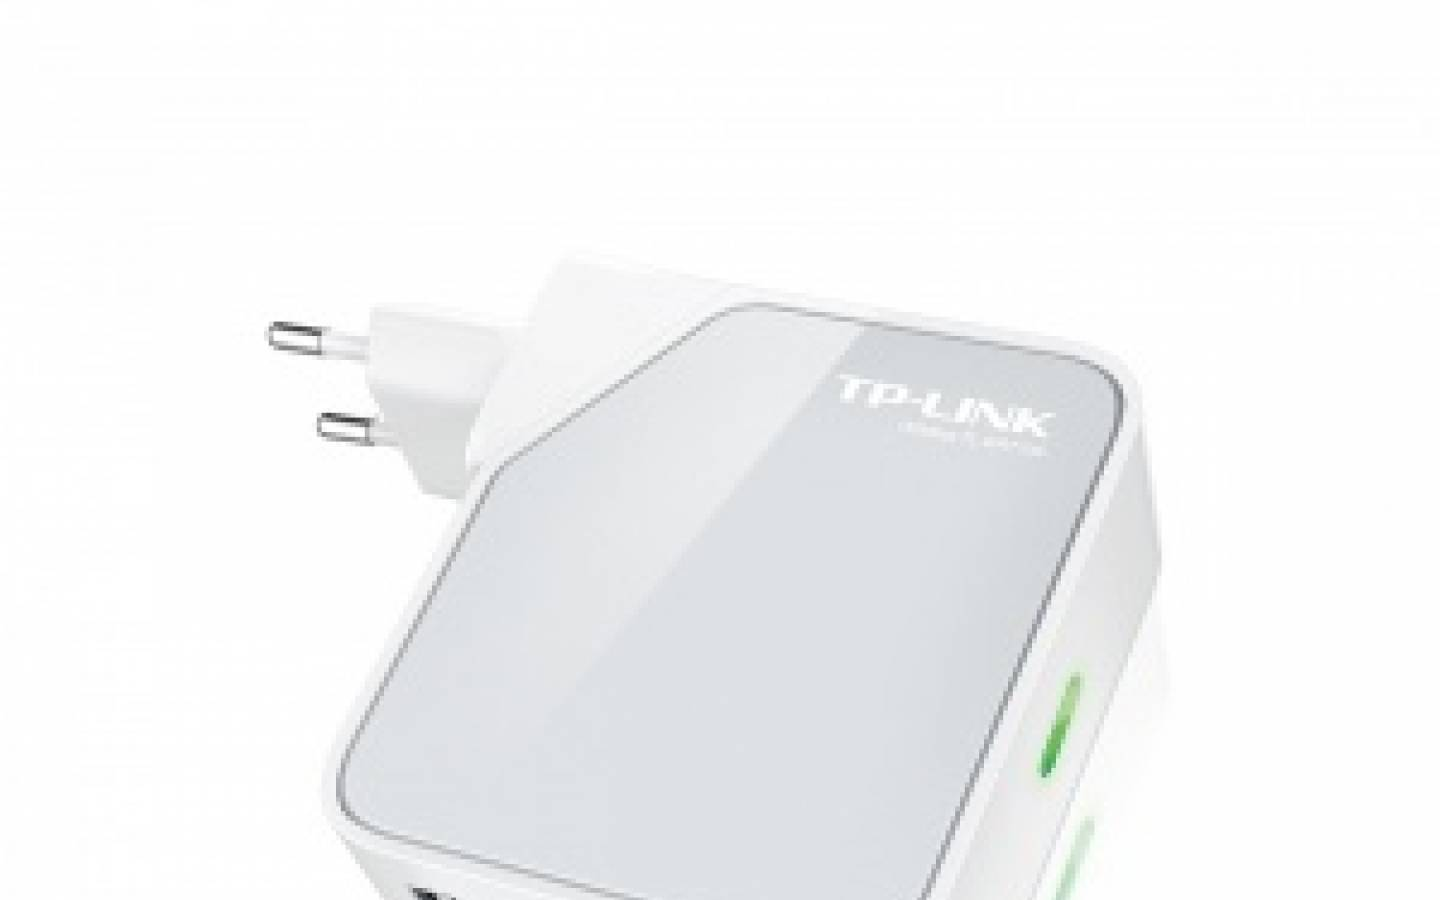 ROUTER WIFI NANO TL-WR710N AP ROUTER CLIENTE 150mbps